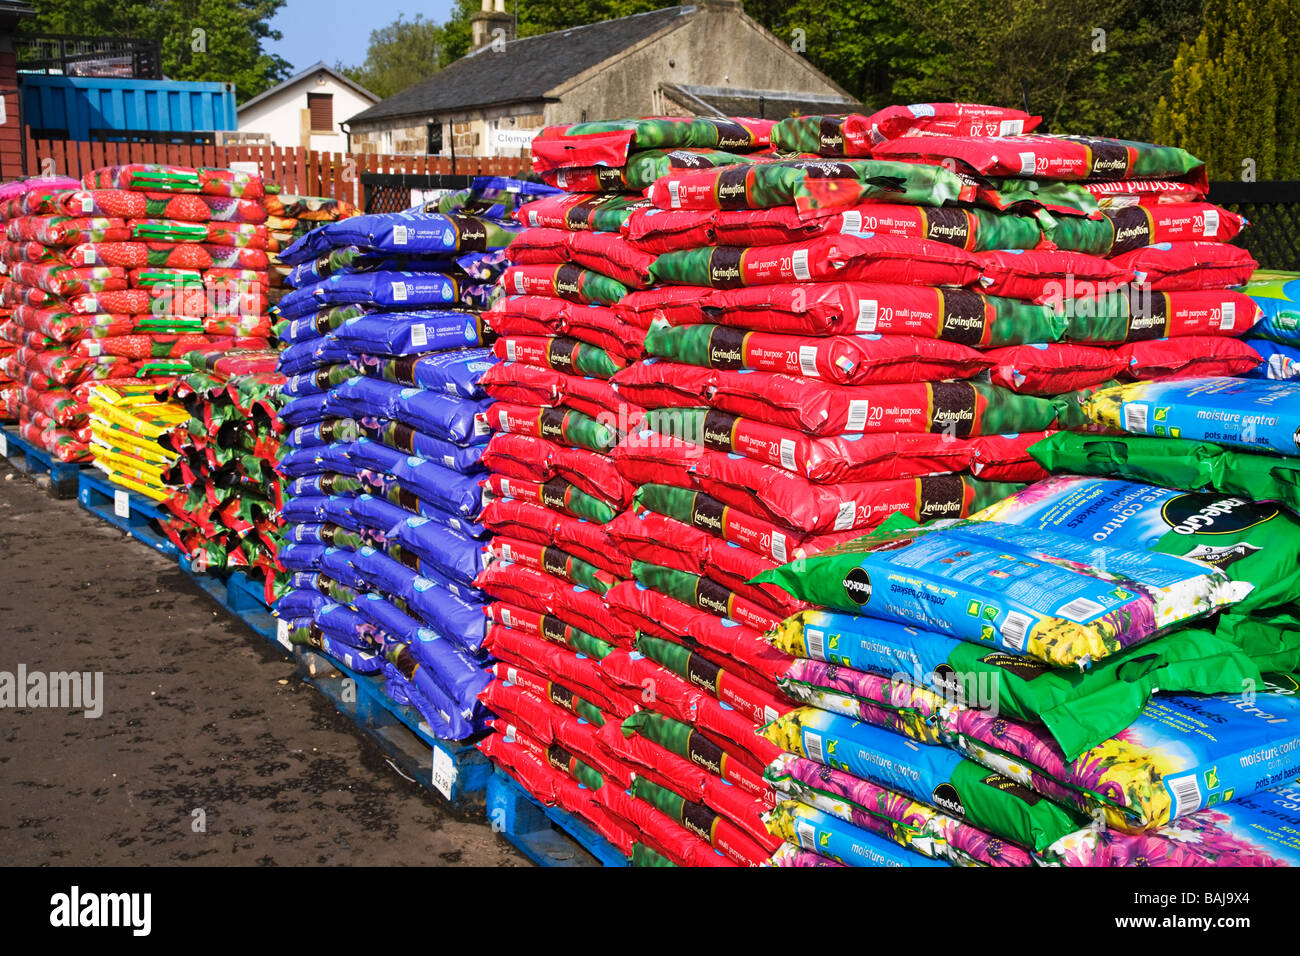 Bags of compost stacked on pallets at a garden centre. - Stock Image